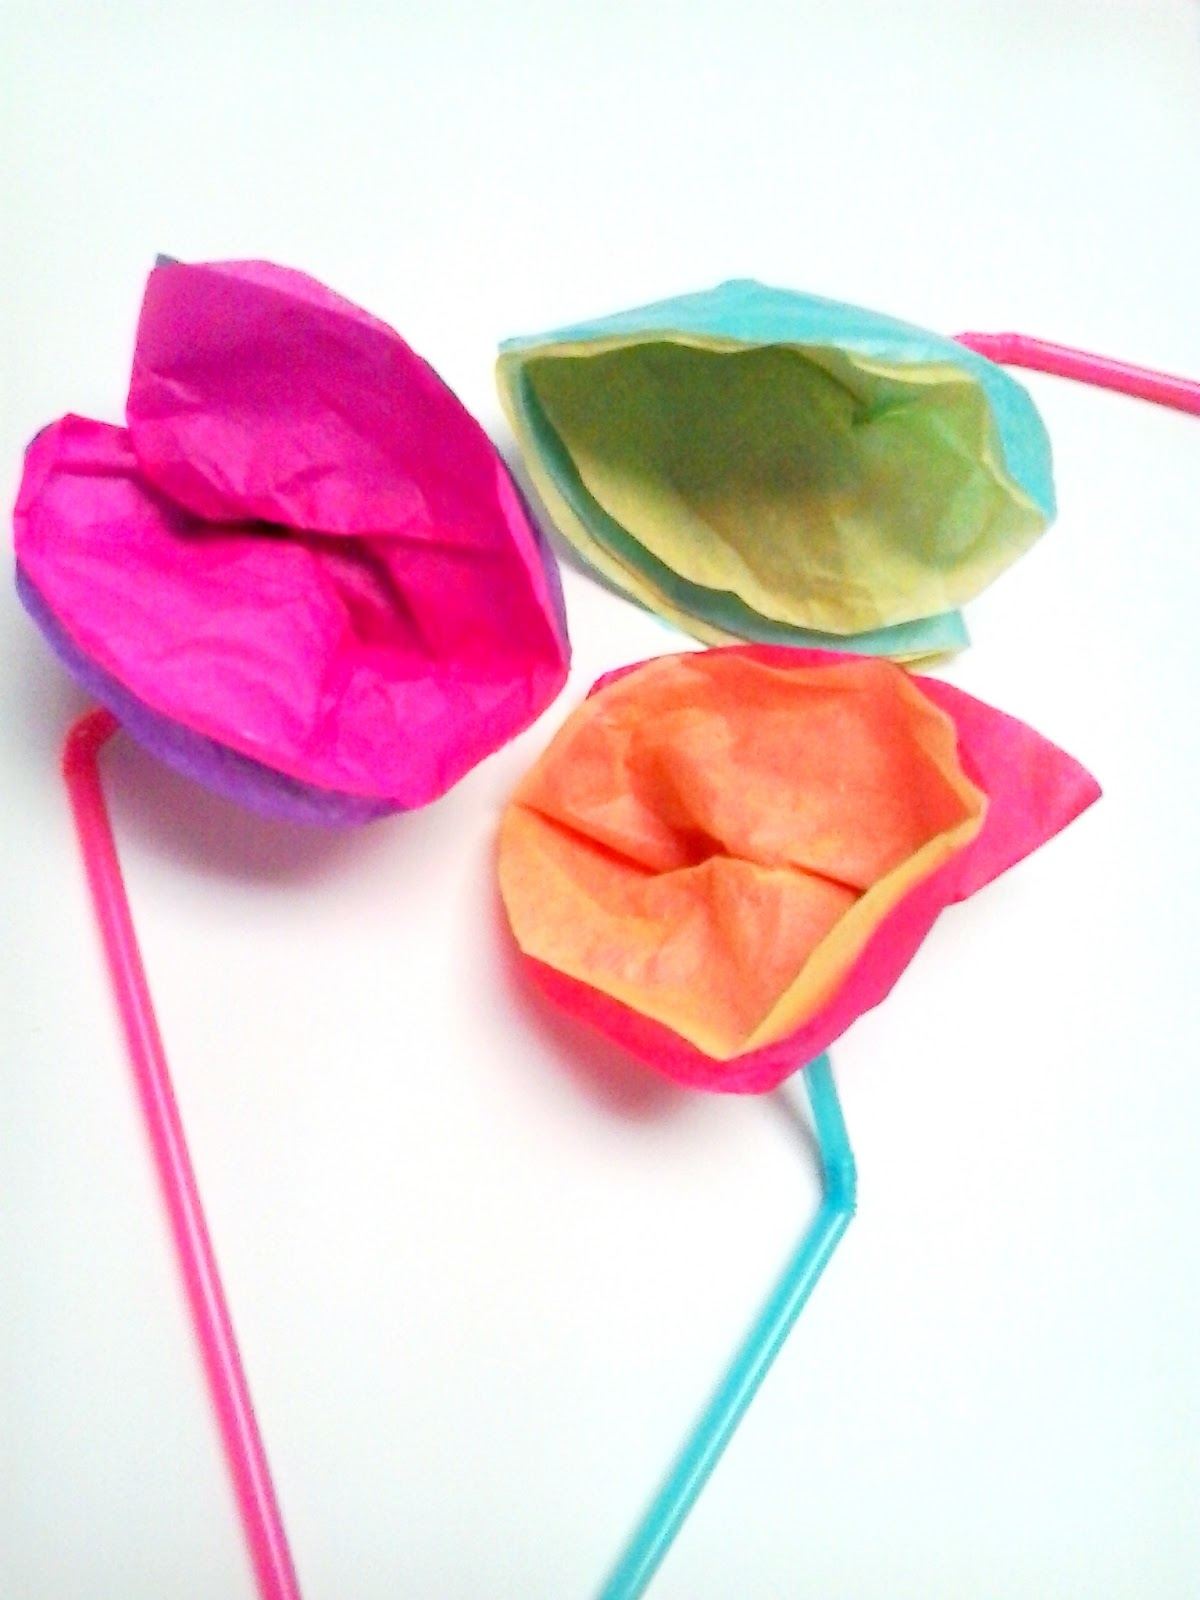 tissue paper crafts for kids This kimono art project is great for children of all ages,  origami kimono bleeding tissue paper  on this page you'll find lots of free crafts and.